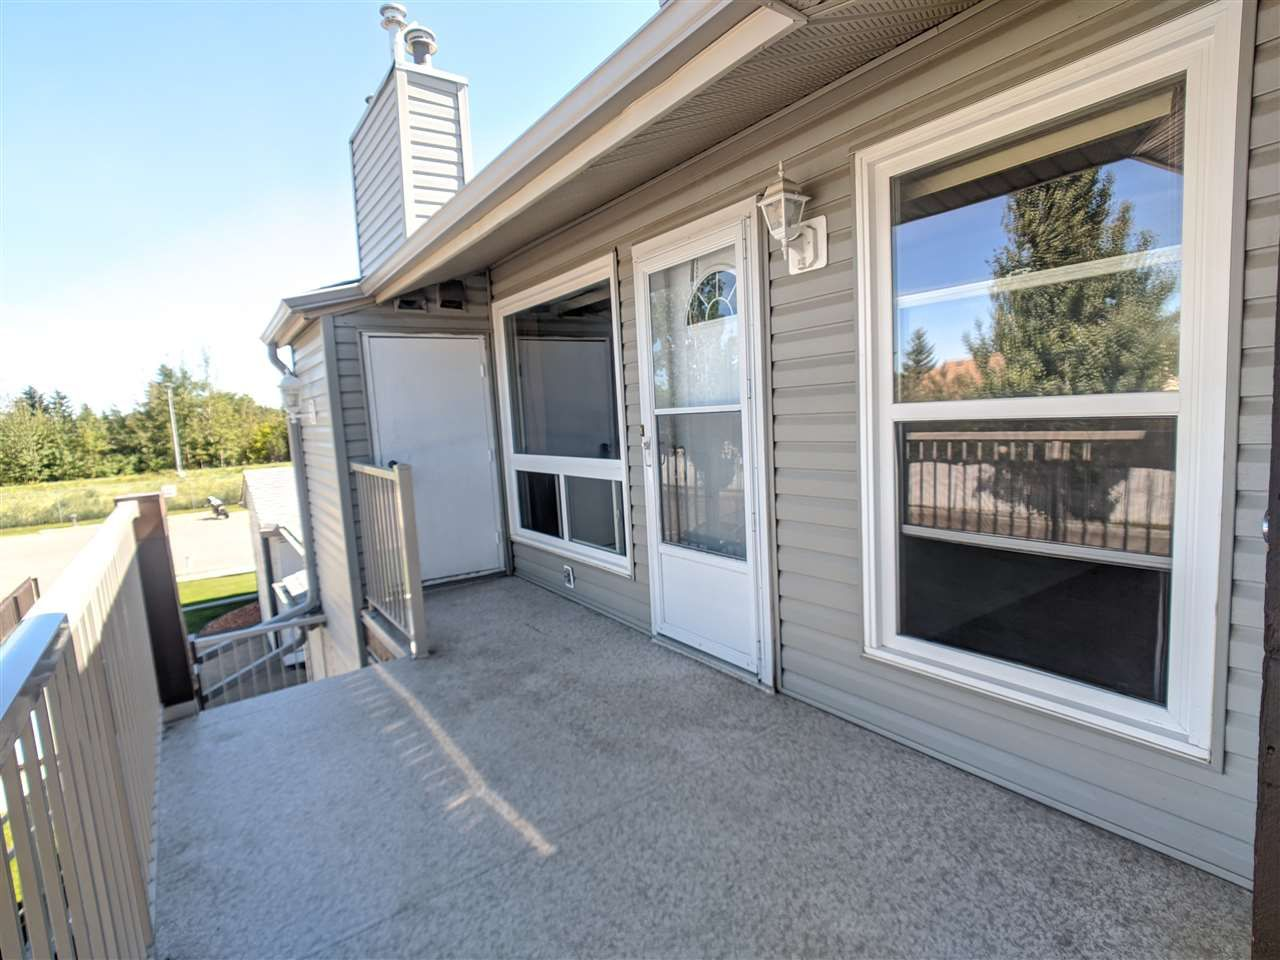 Main Photo: 9367 172 Street in Edmonton: Zone 20 Carriage for sale : MLS®# E4233789